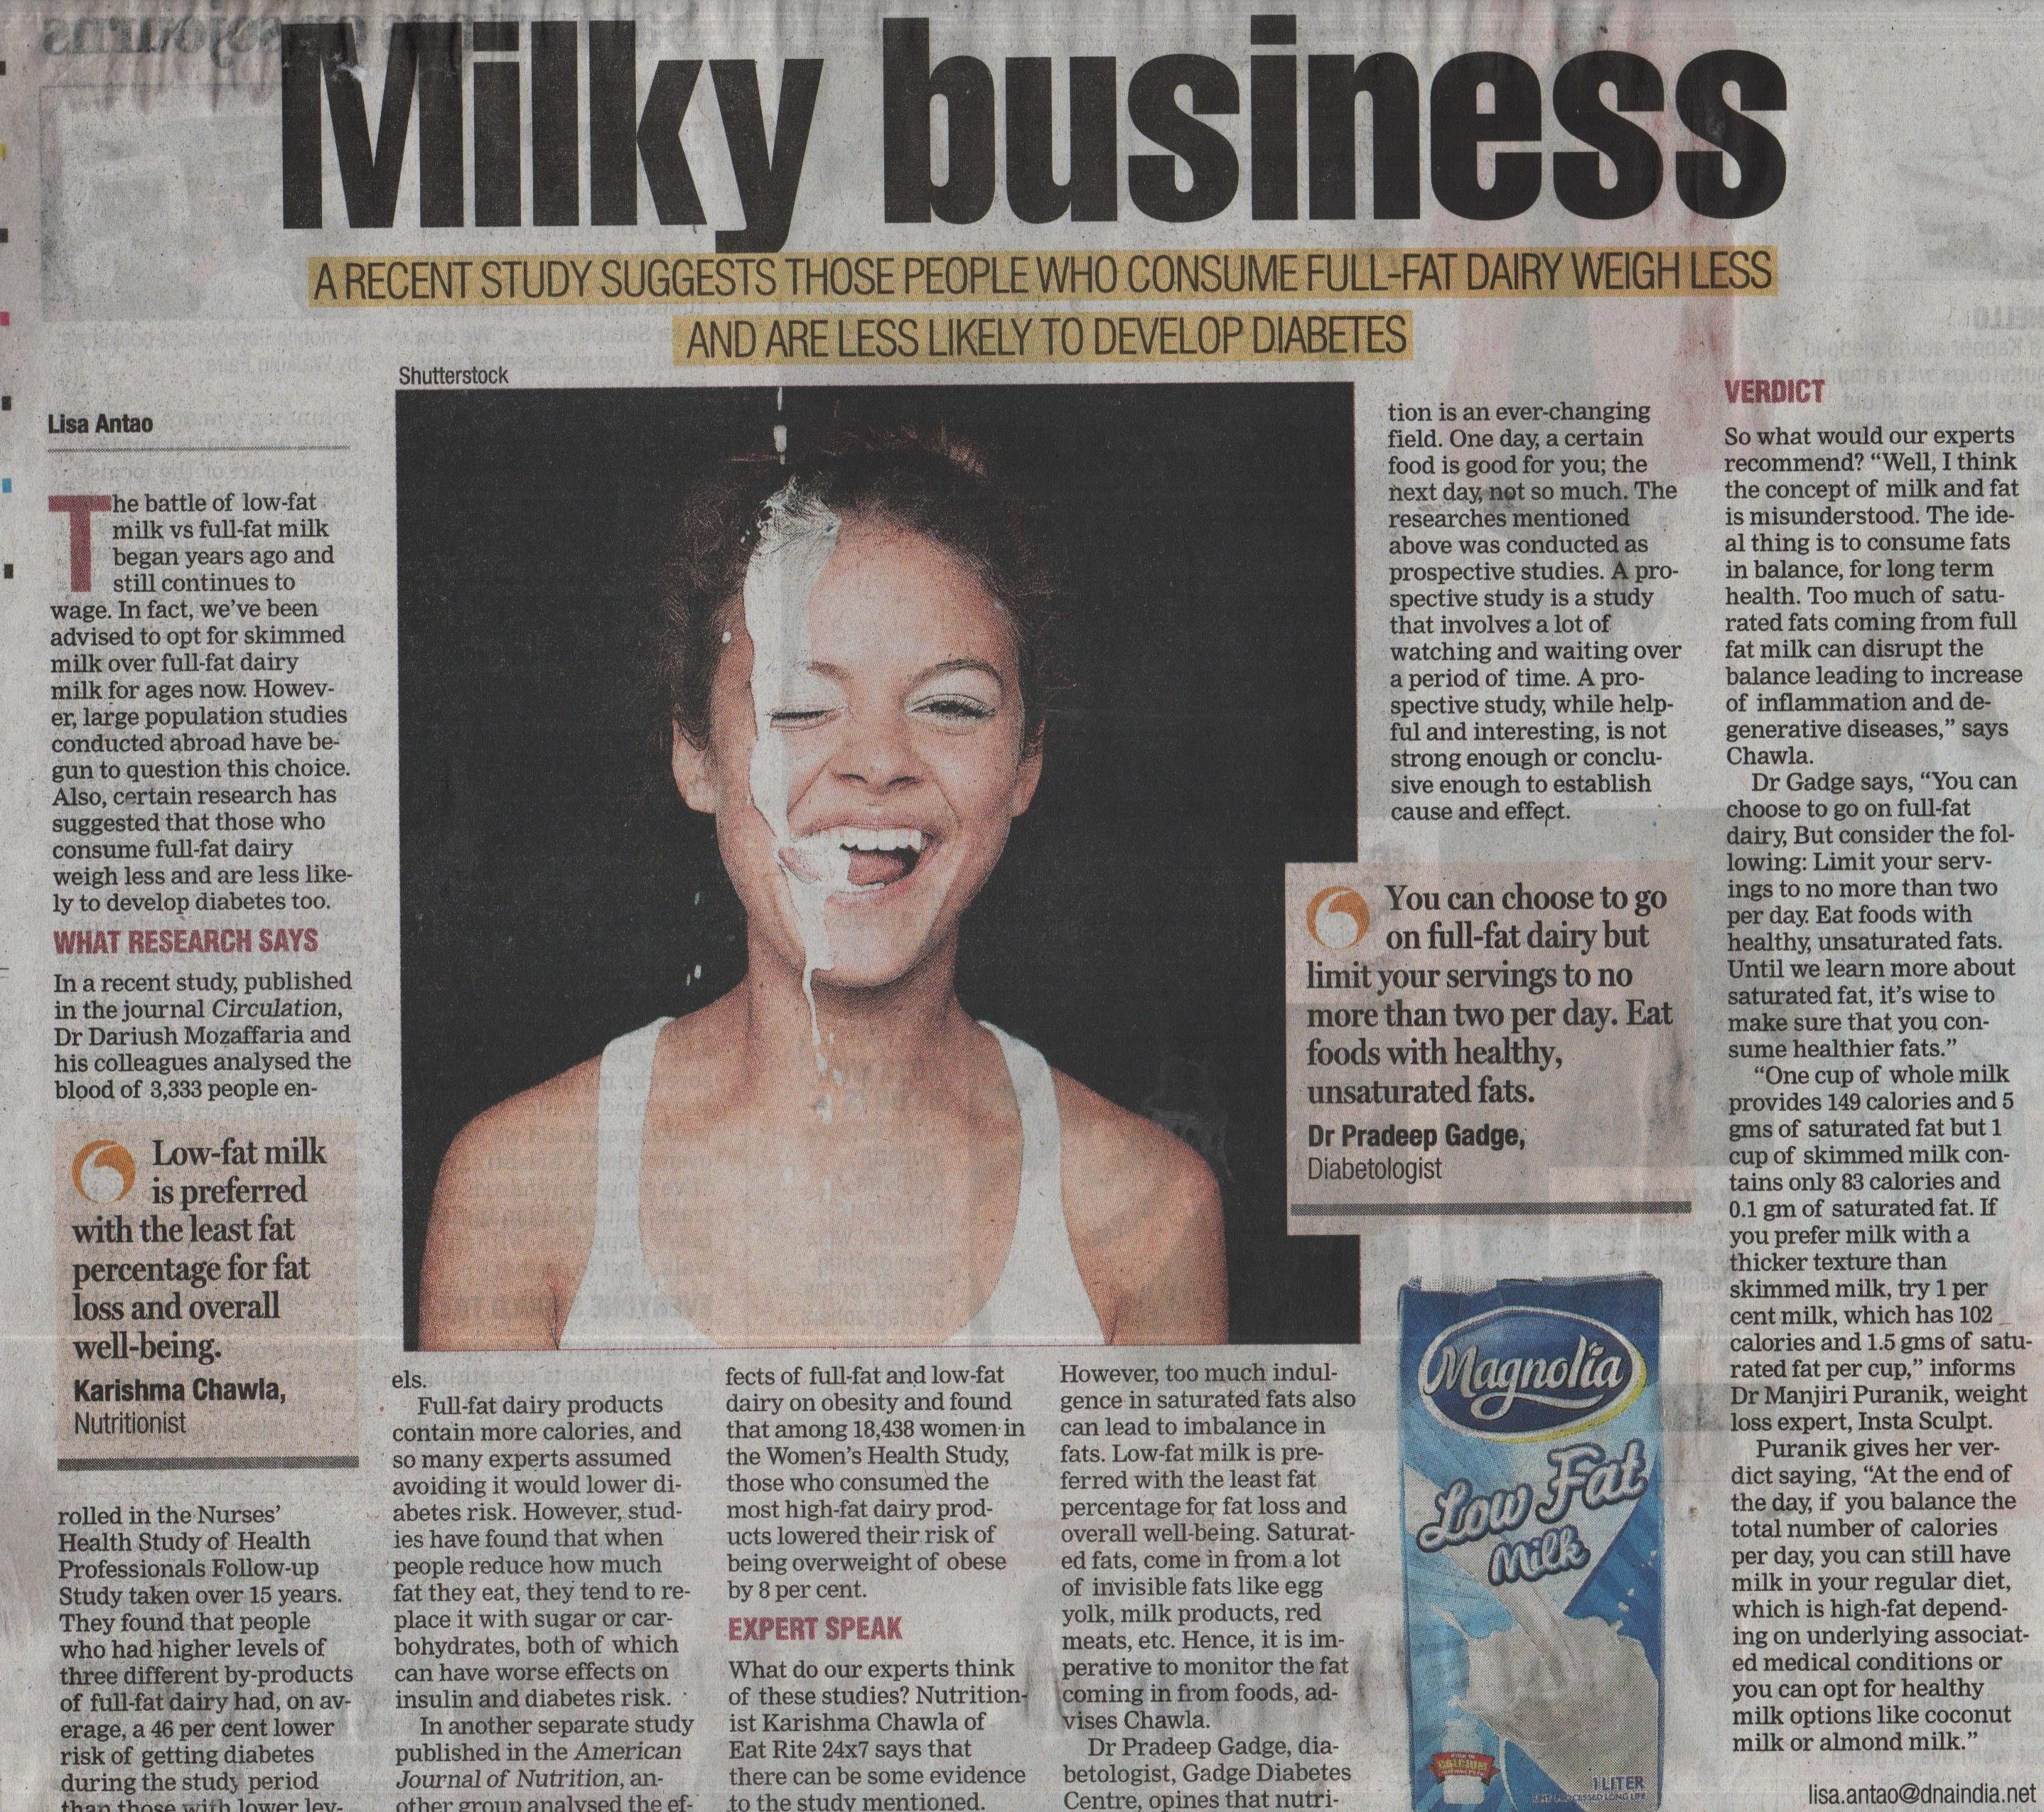 milky business